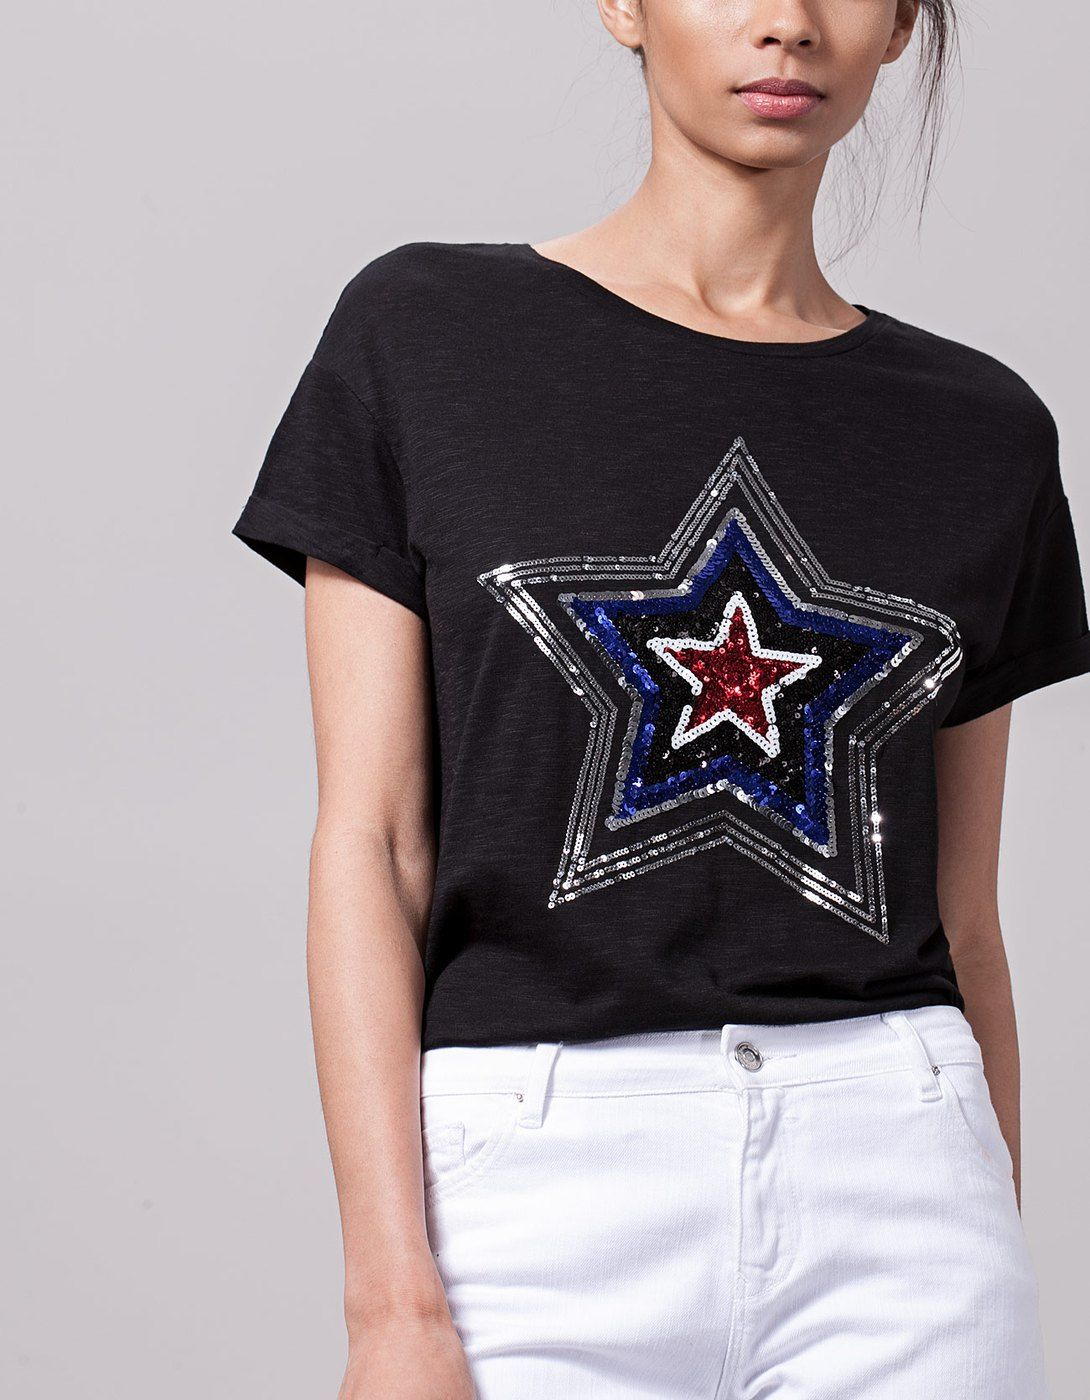 bb4dadef0959 Sequinned top - T-shirts. Μπλουζάκι με παγιέτες